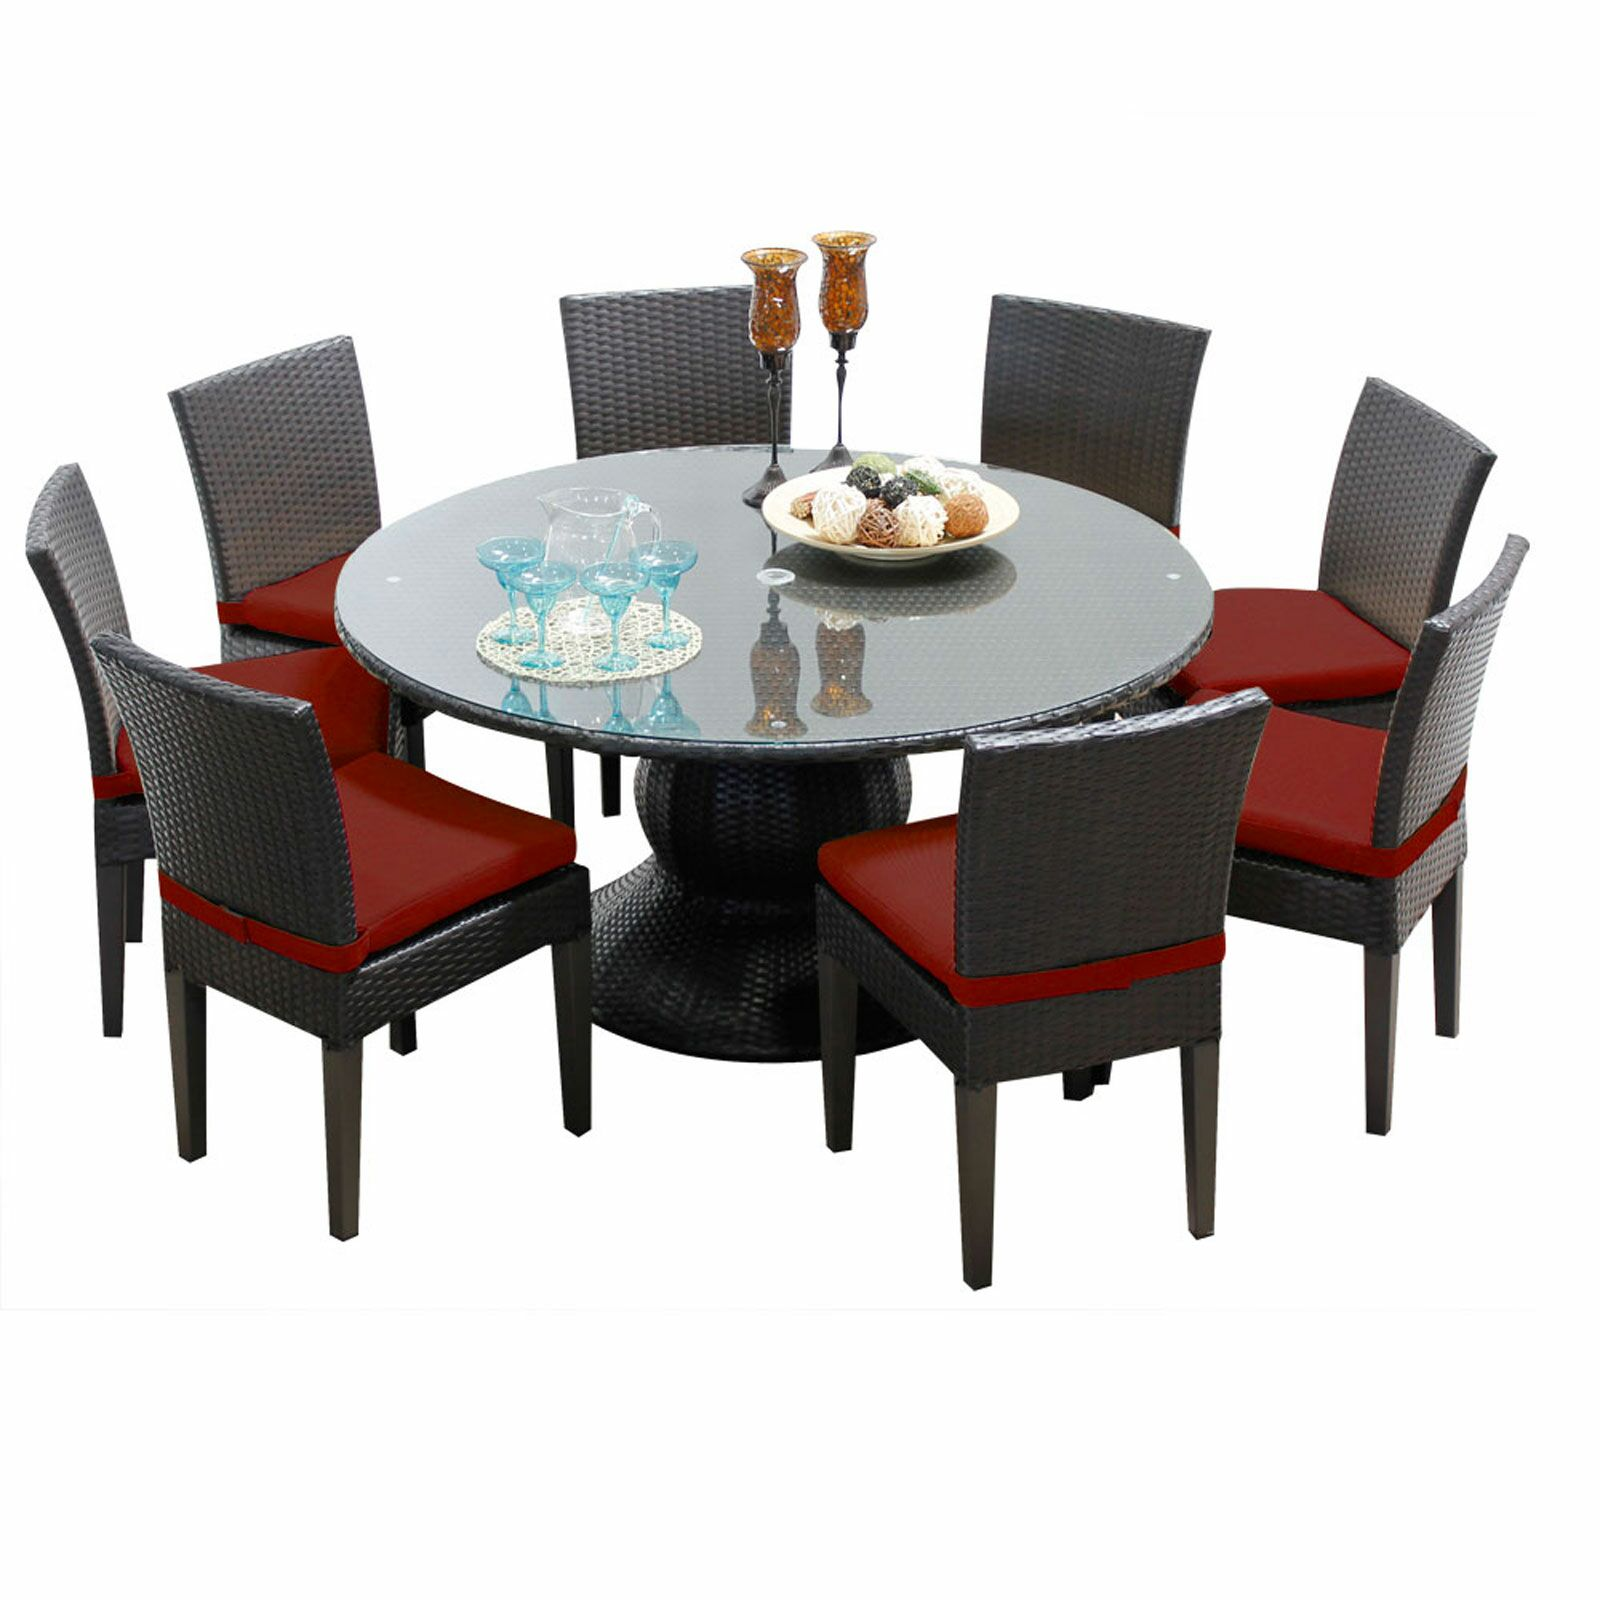 Napa 9 Piece Dining Set with Cushions Color: Terracotta